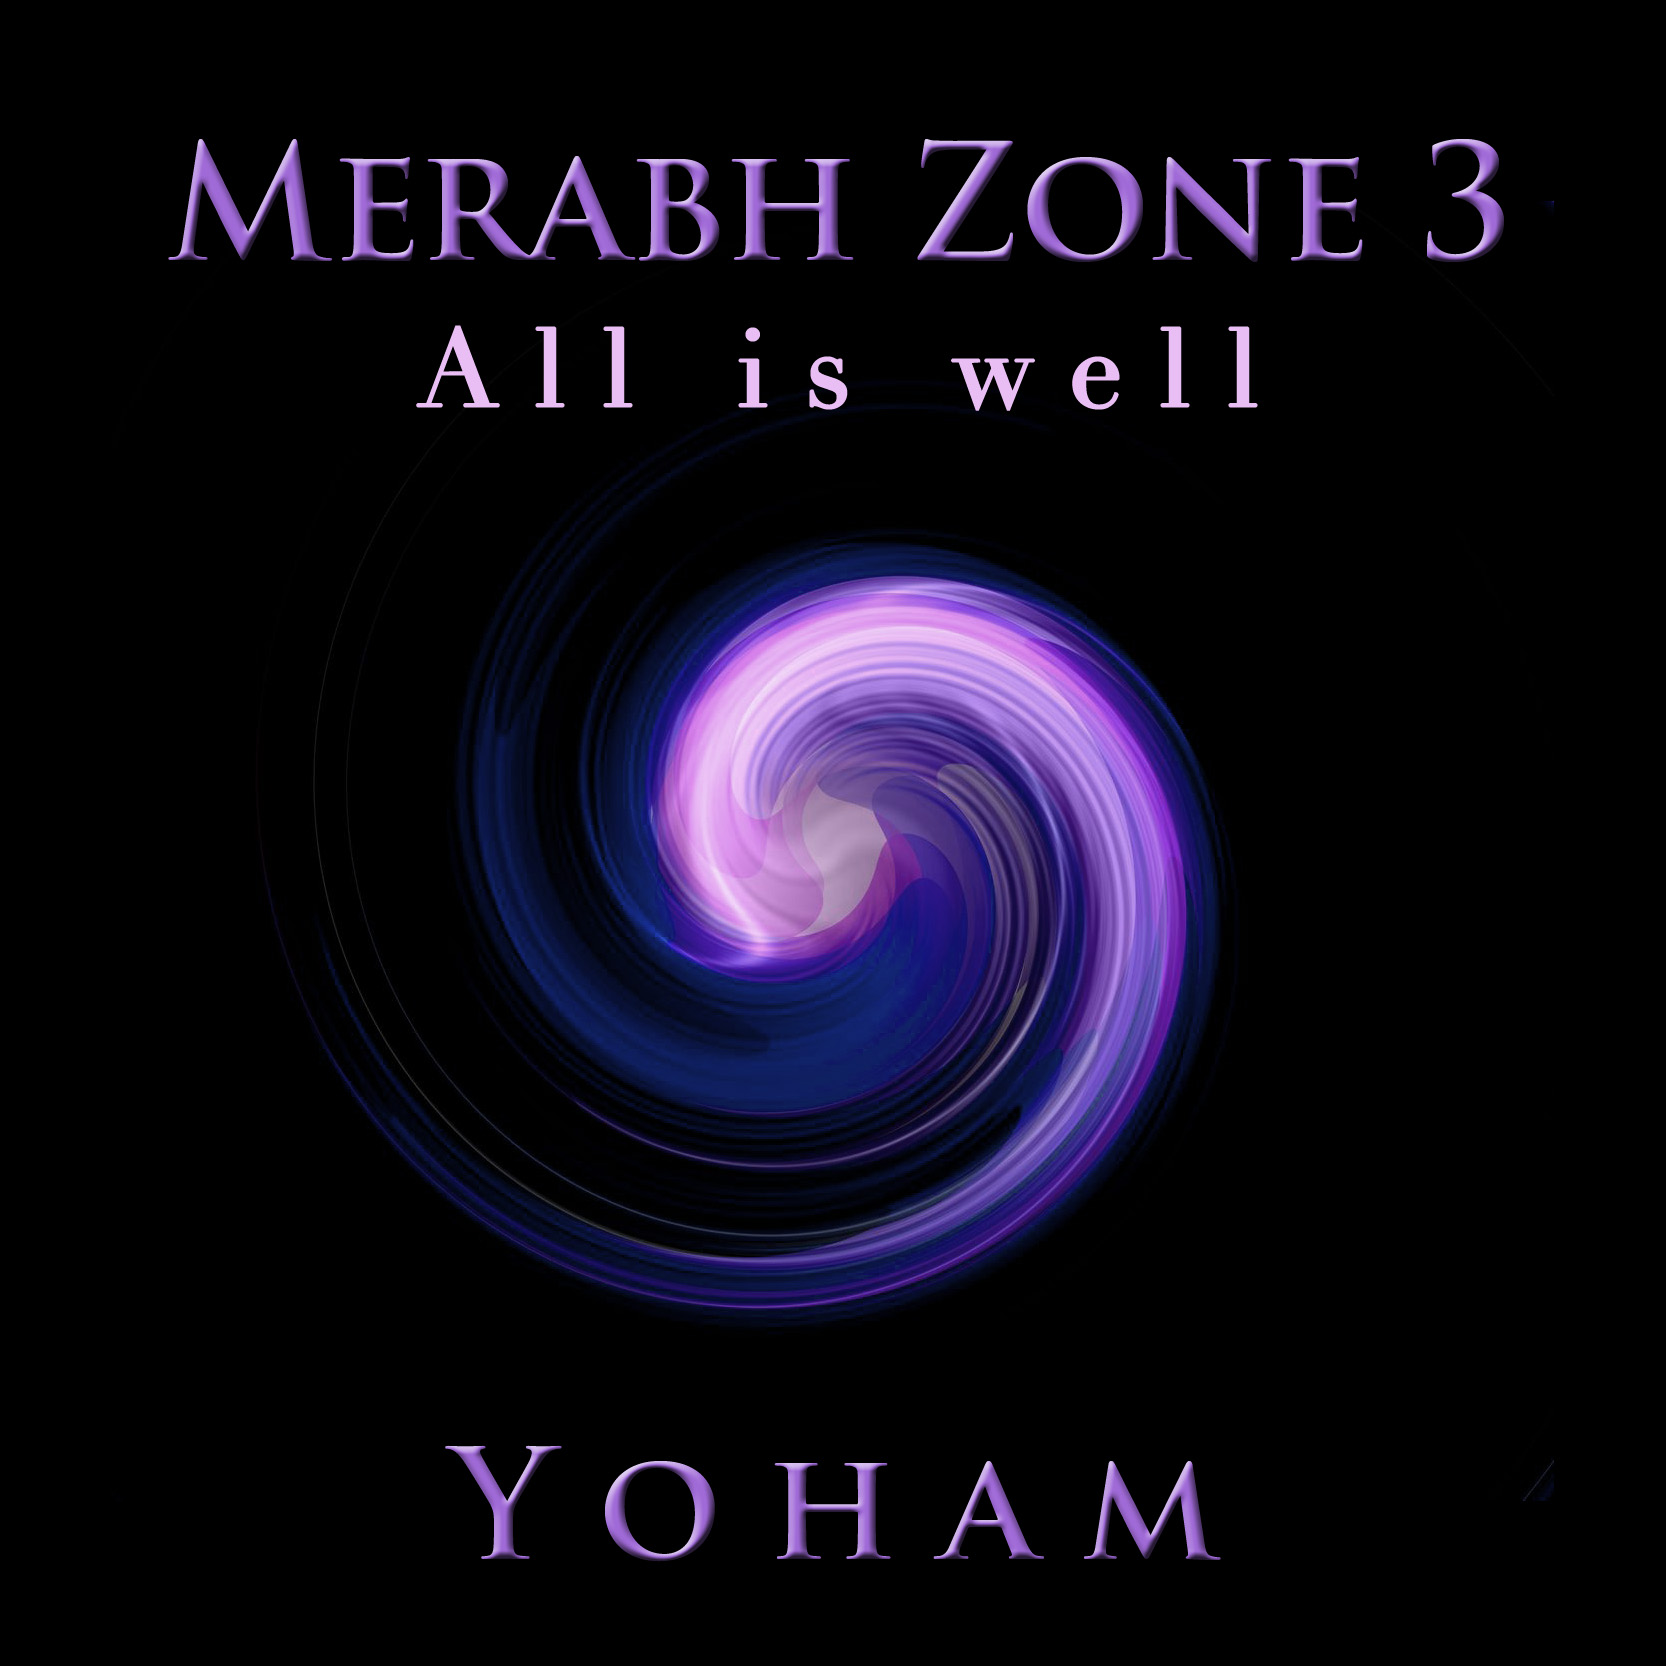 Merabh Zone 3 - All is Well